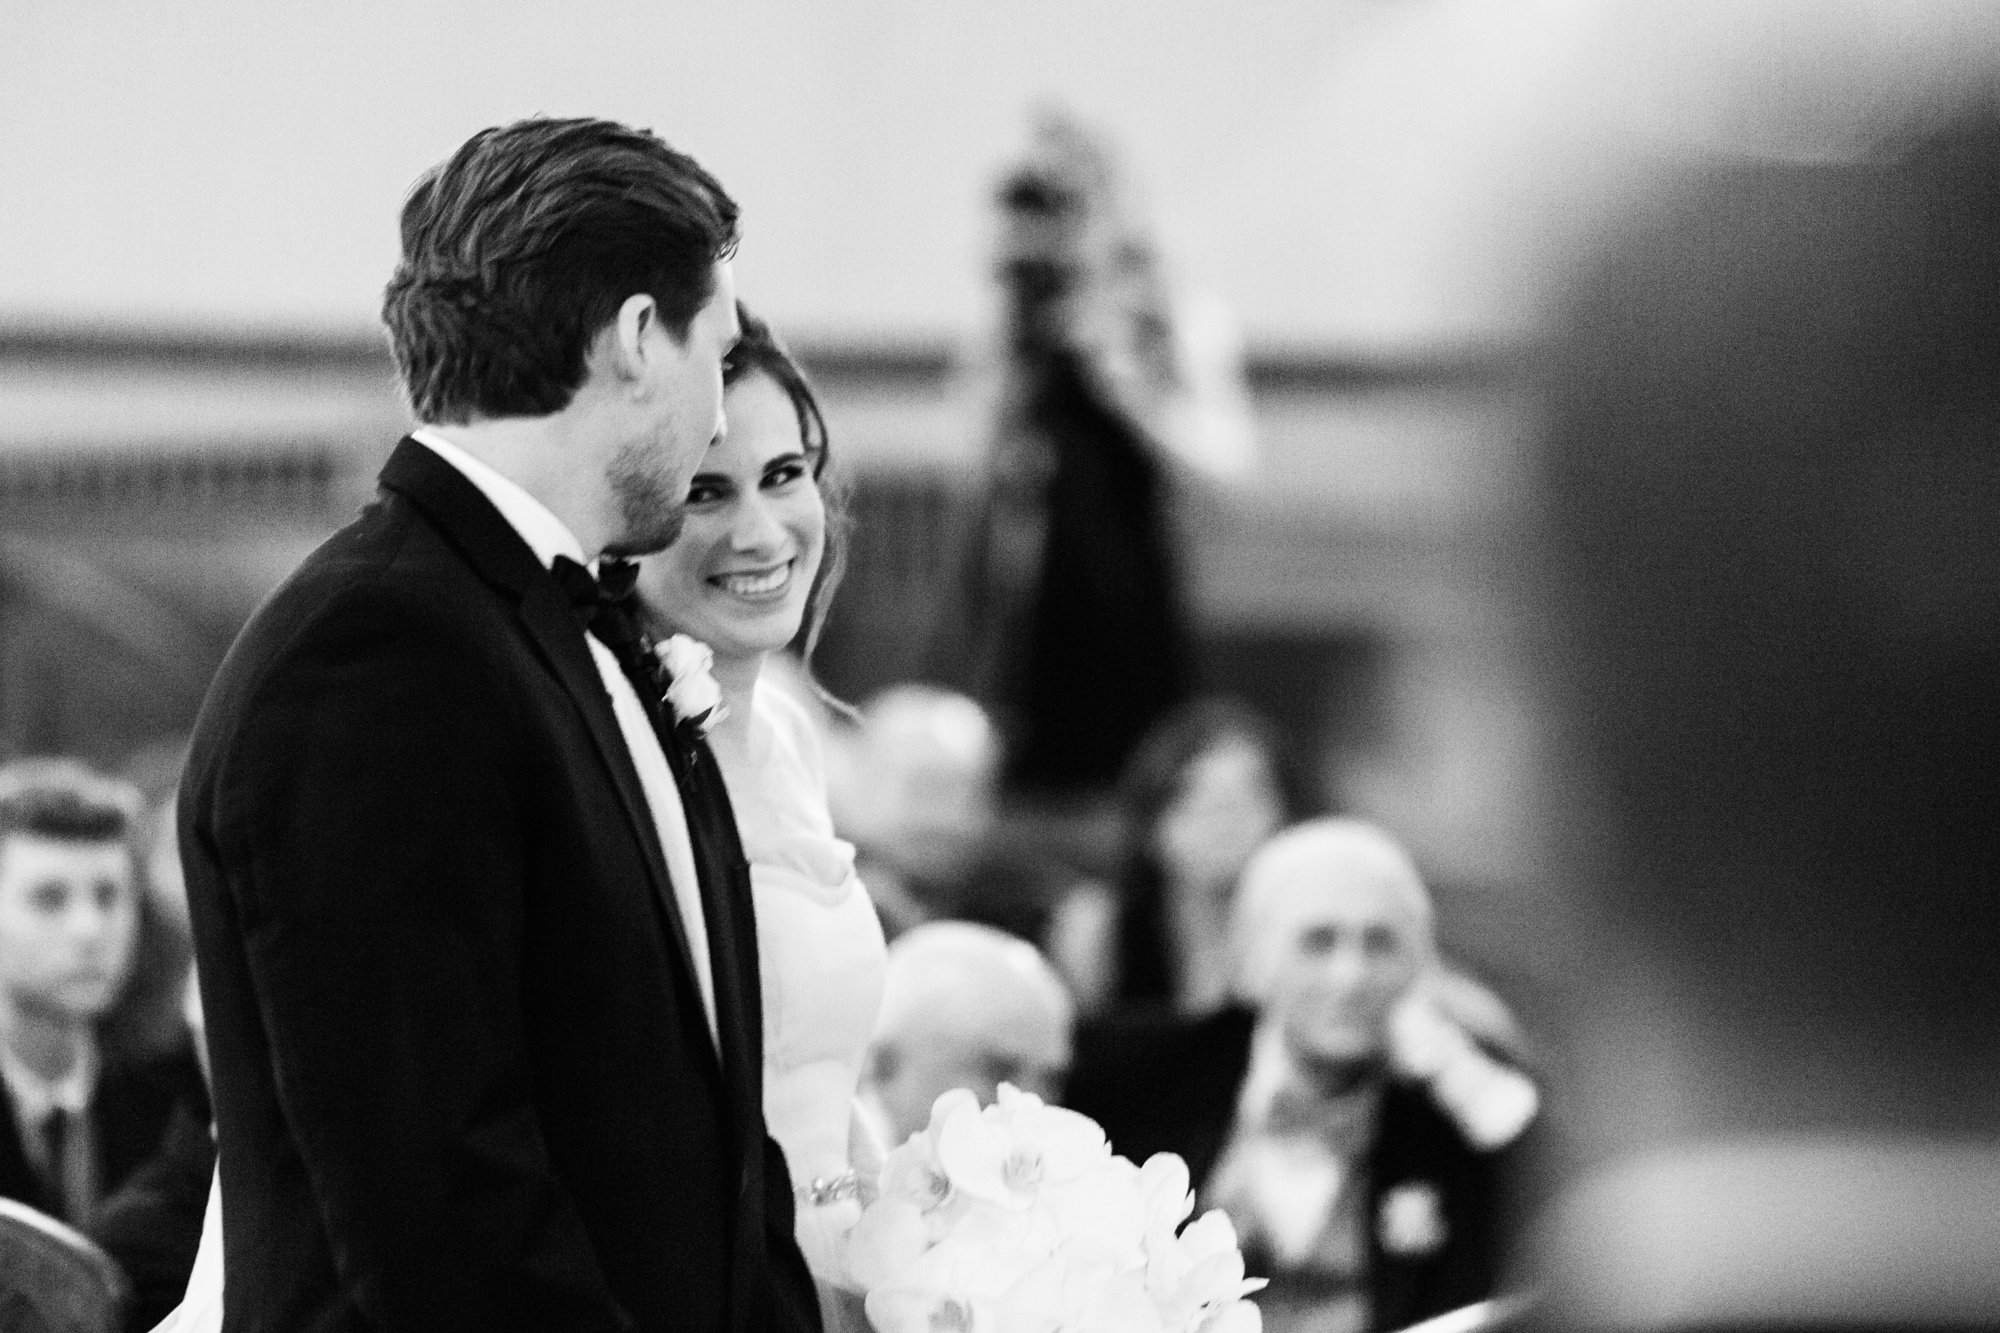 Wedding ceremony at St James Lutheran Church in downtown Chicago.